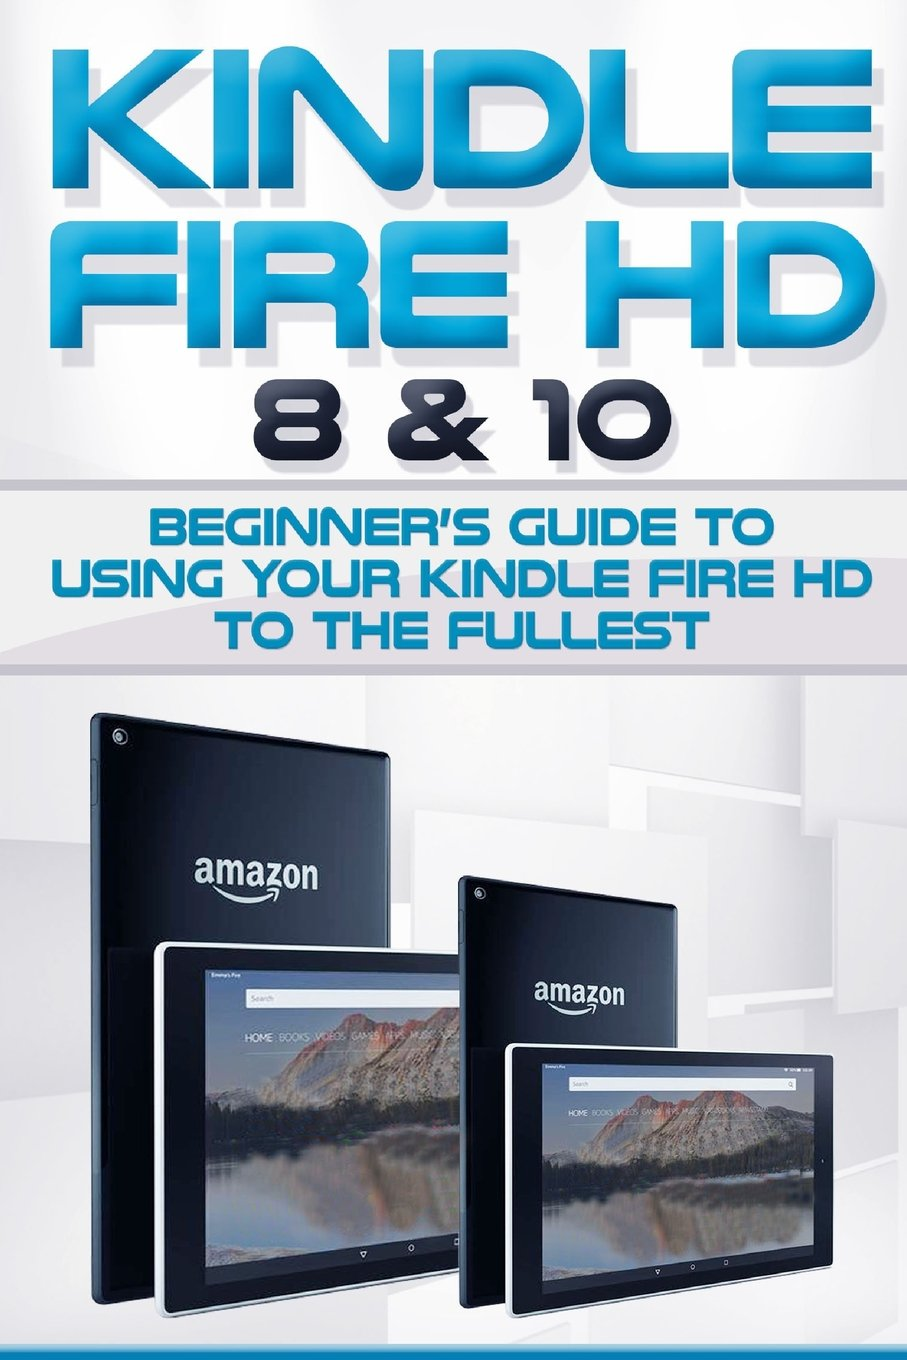 Download Kindle Fire HD 8 & 10: Beginner's Guide to Using Your Kindle Fire HD to the Fullest. (Tips and Tricks, Kindle Fire HD 8 & 10, New Generation) pdf